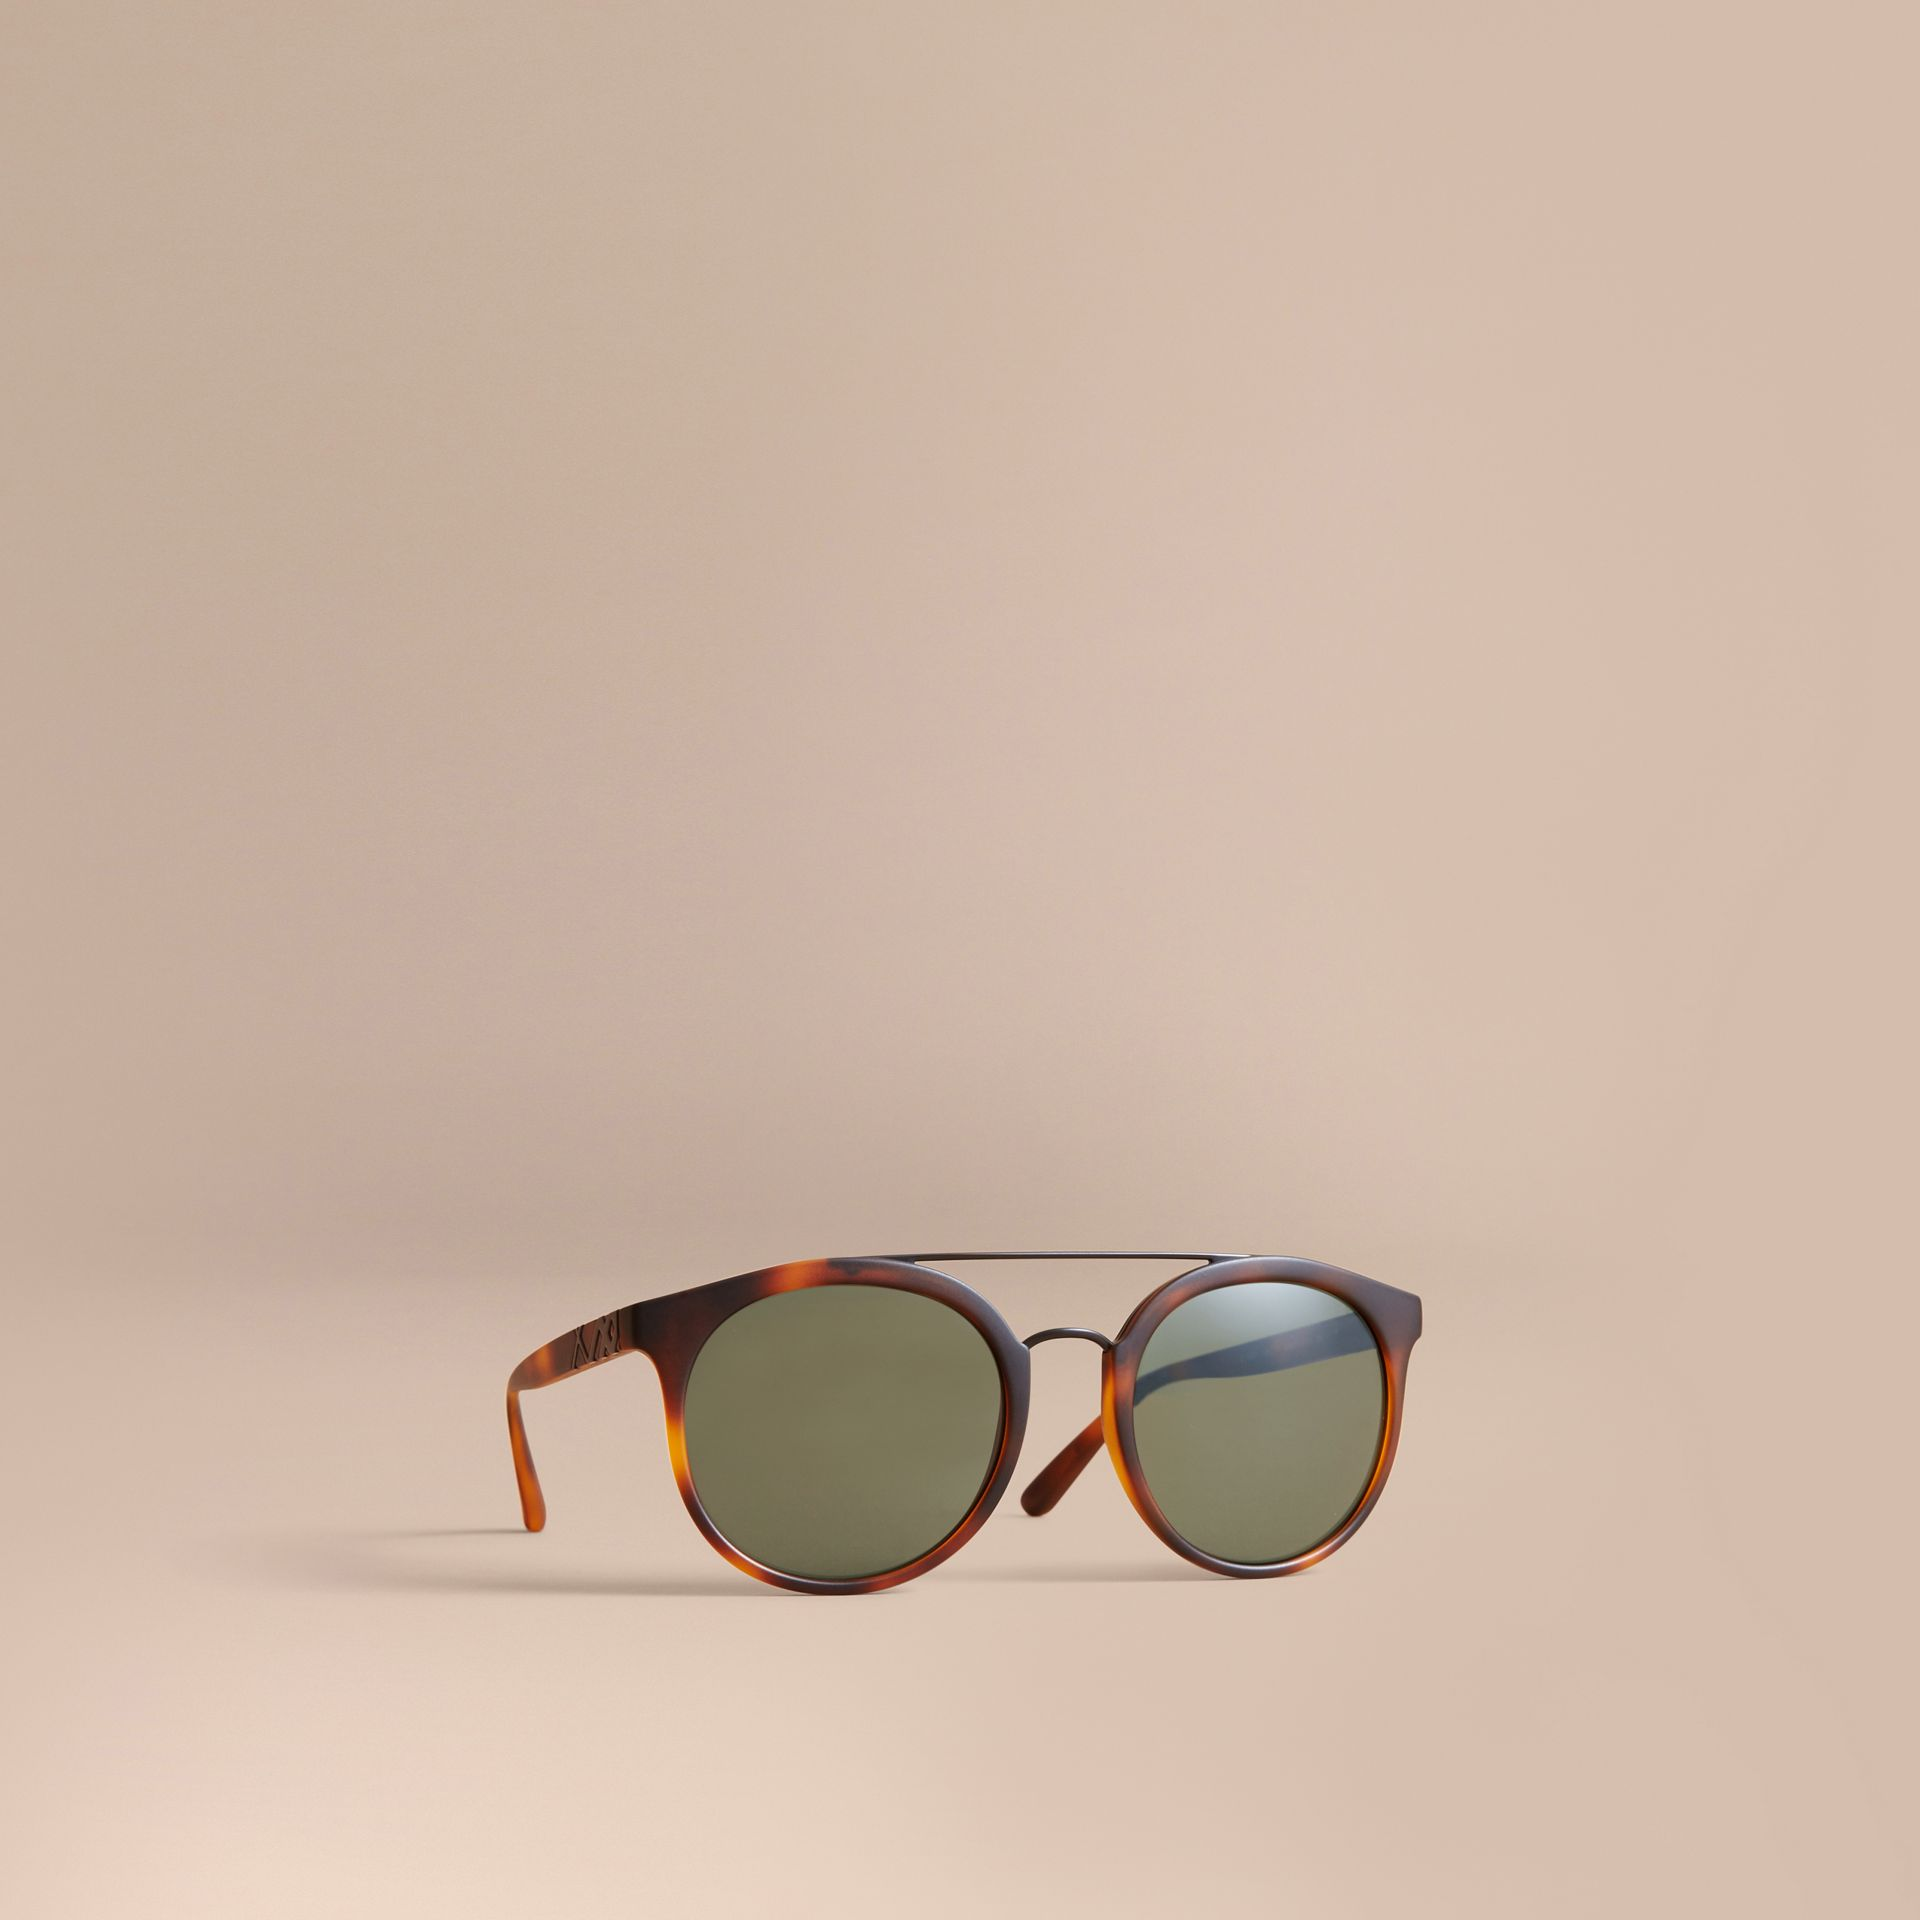 Top Bar Round Frame Sunglasses in Brown - Men | Burberry - gallery image 1